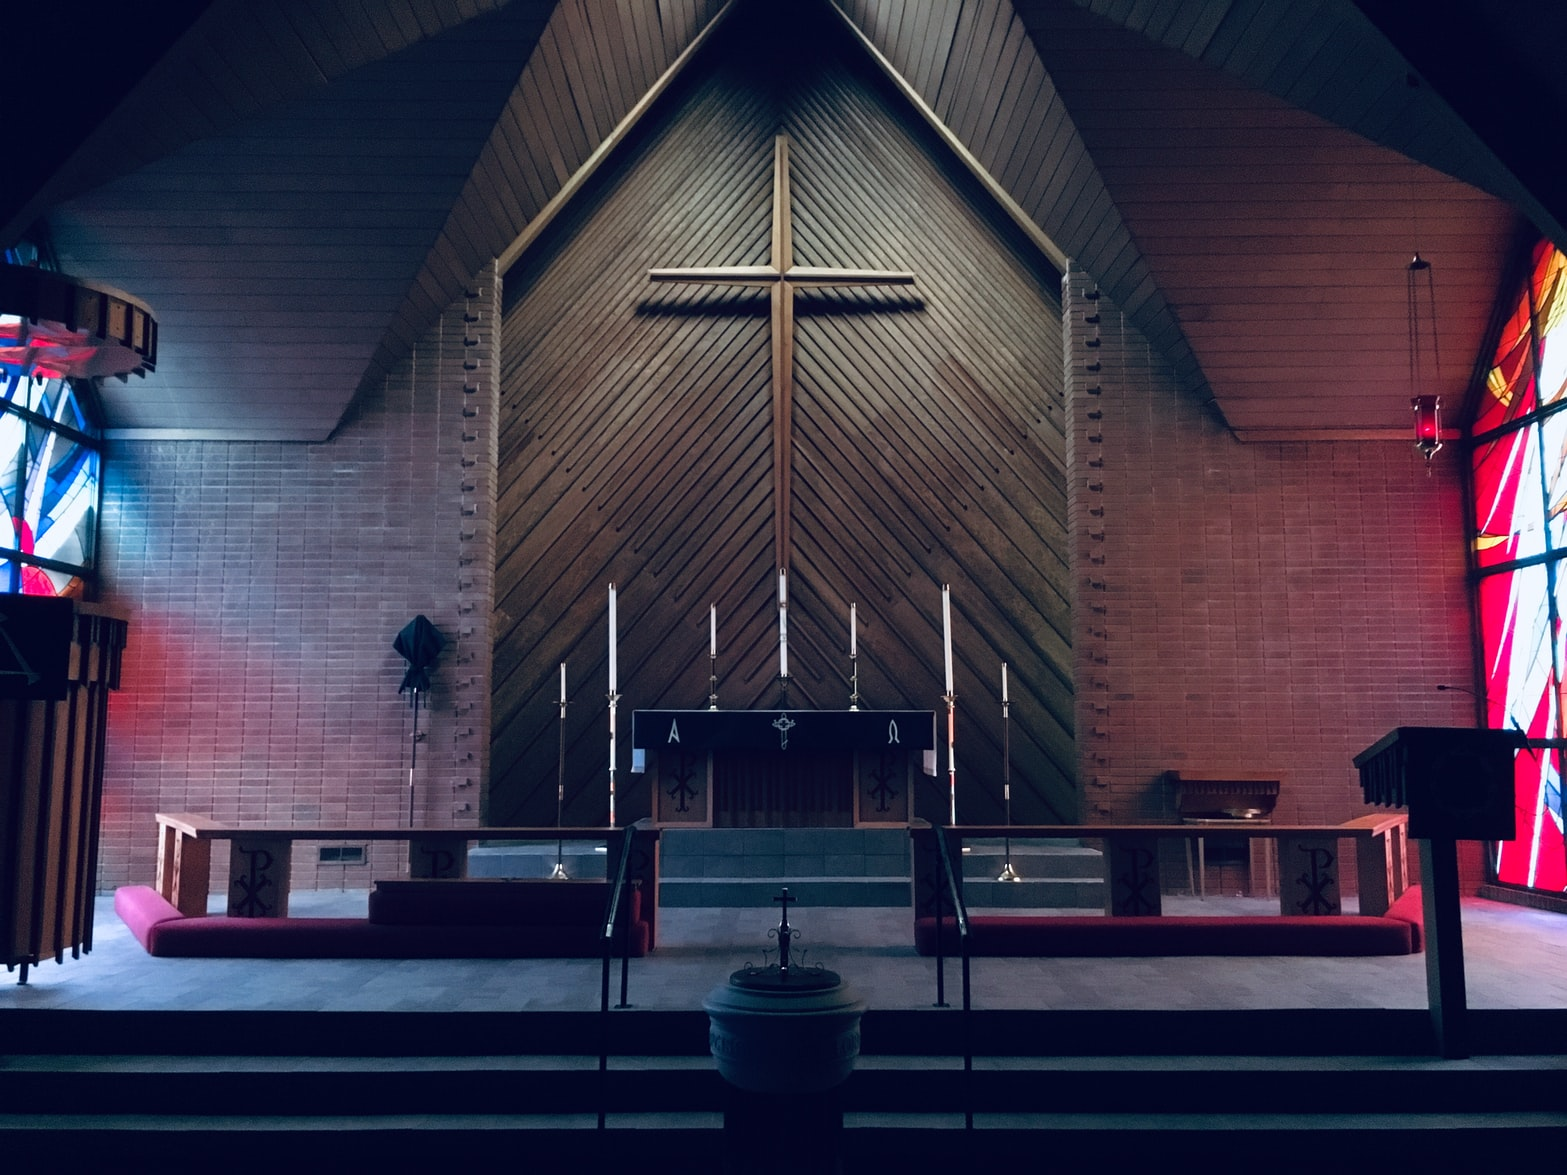 Jason Jimenez on Exposing Three Weaknesses in the Church Causing Moral Decline in America